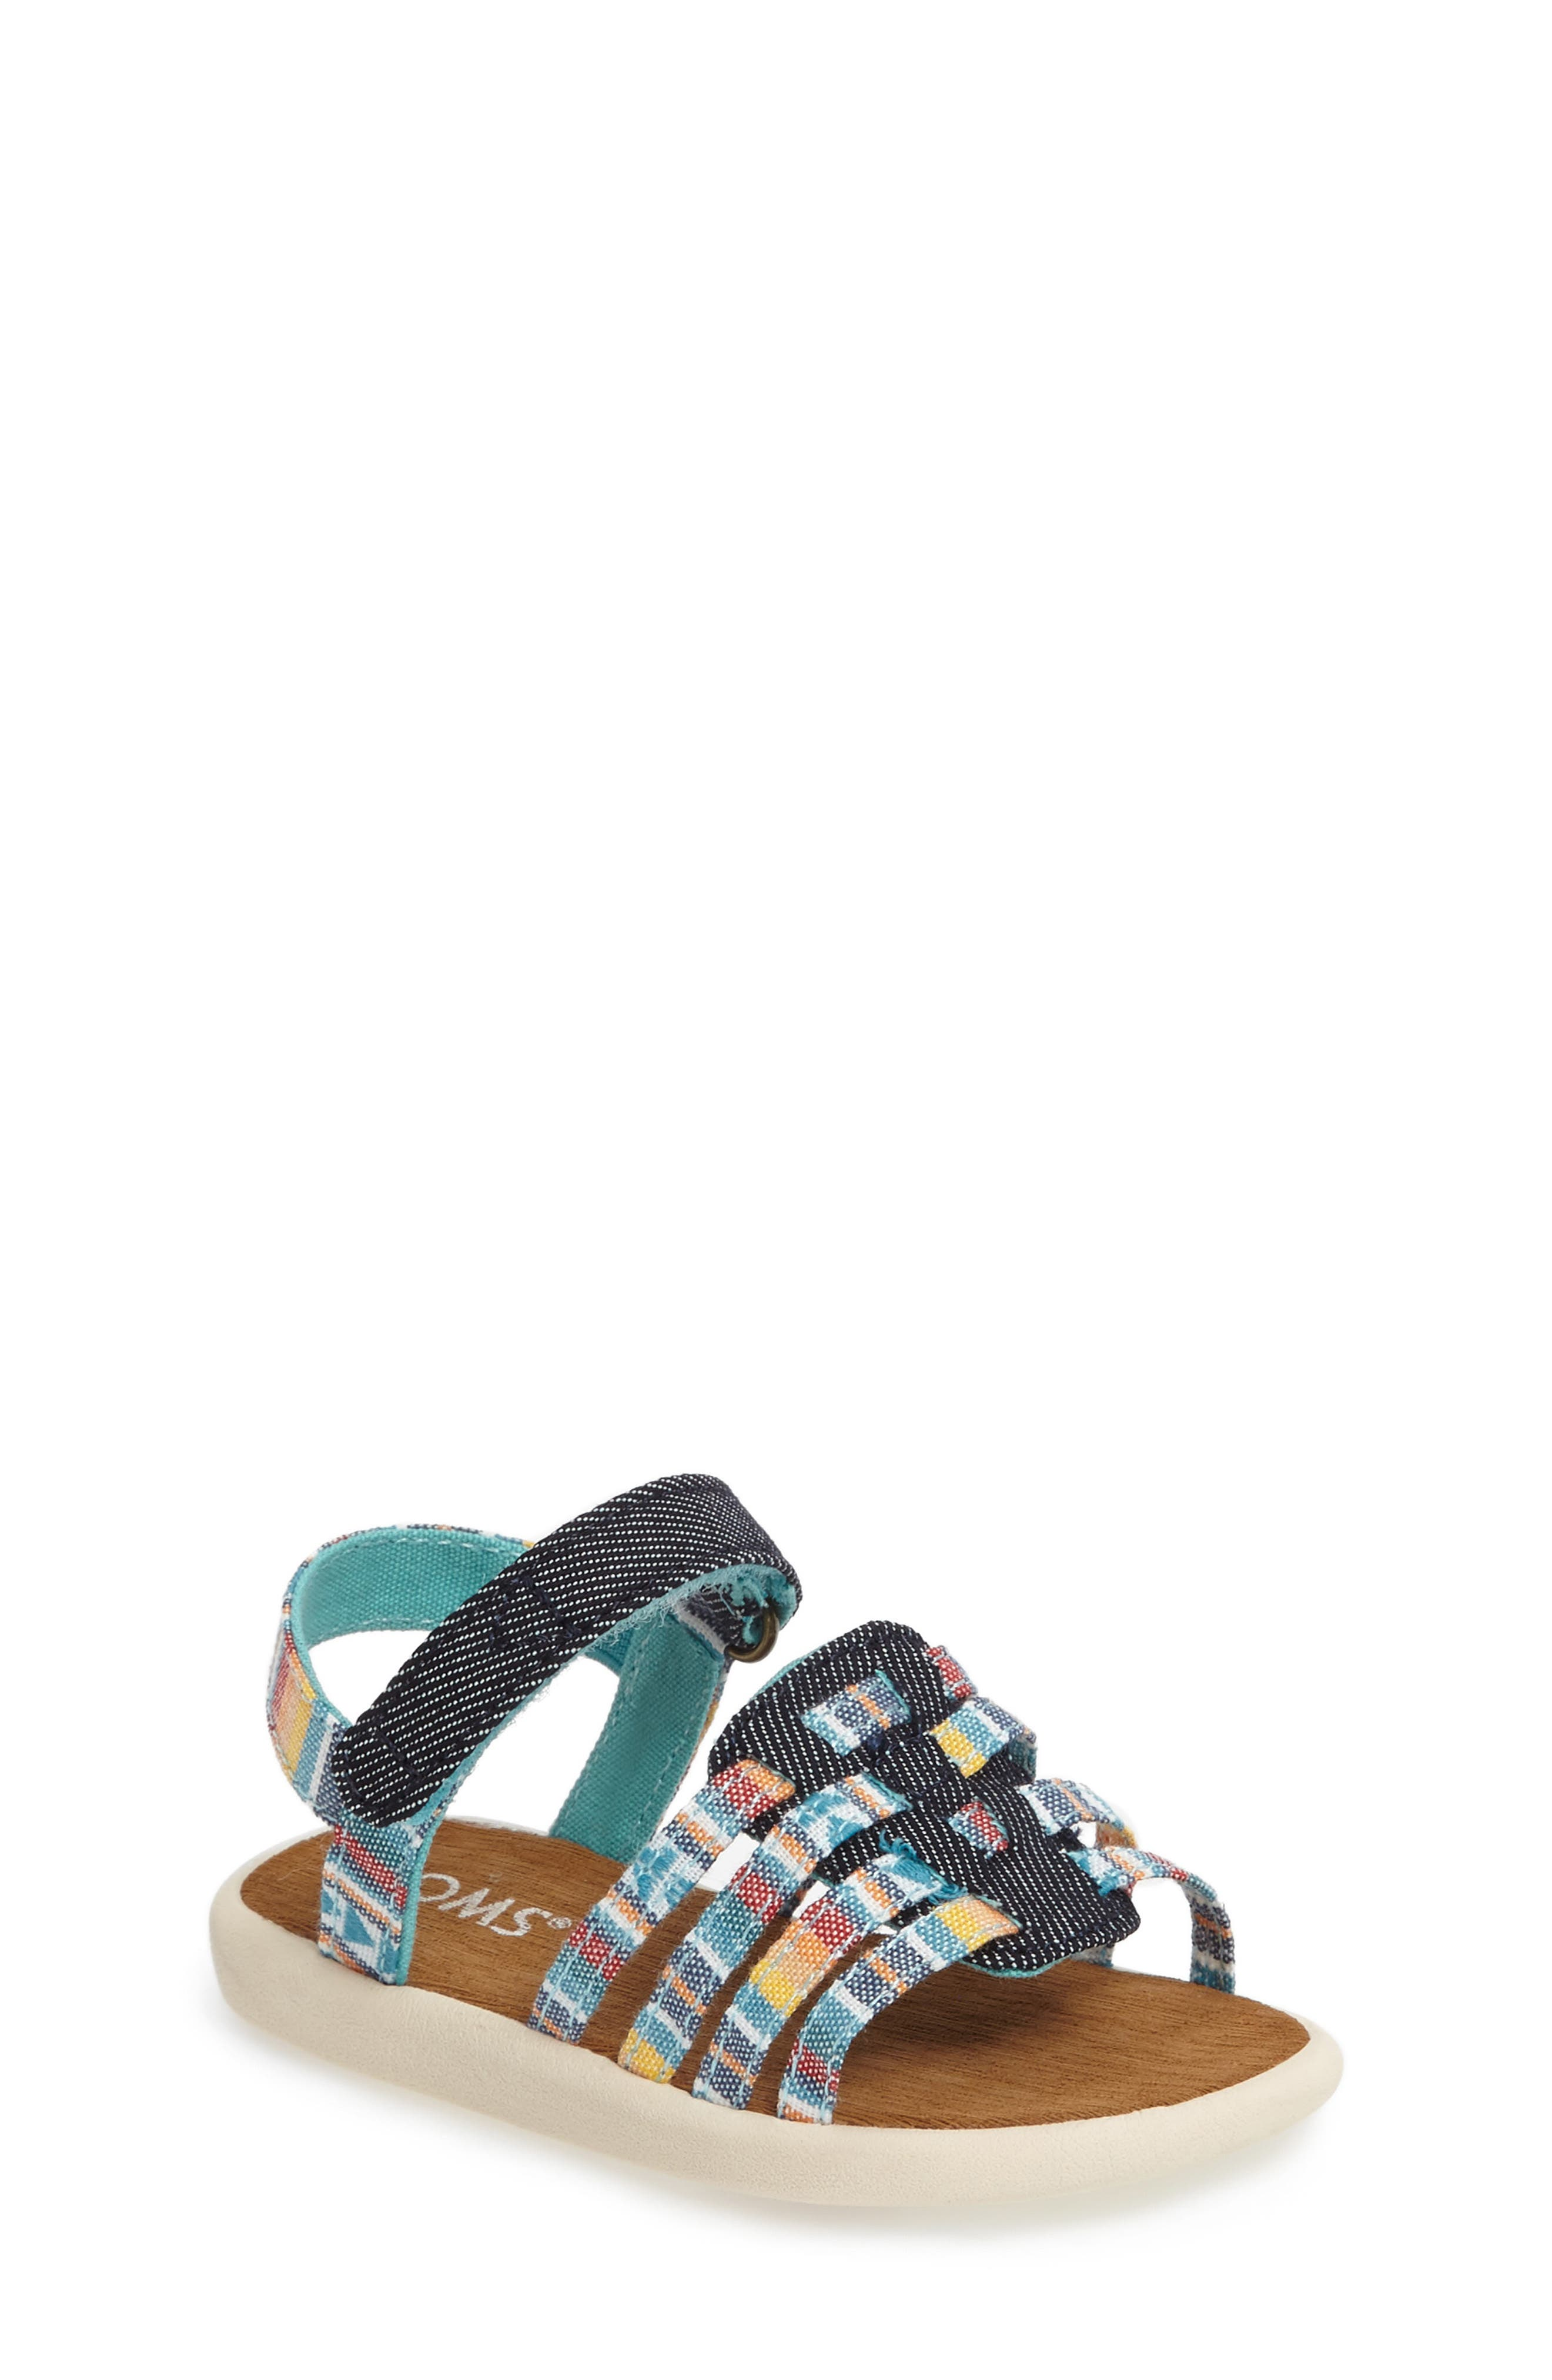 TOMS Huarache Sandal (Baby, Walker, Toddler, Little Kid & Big Kid)